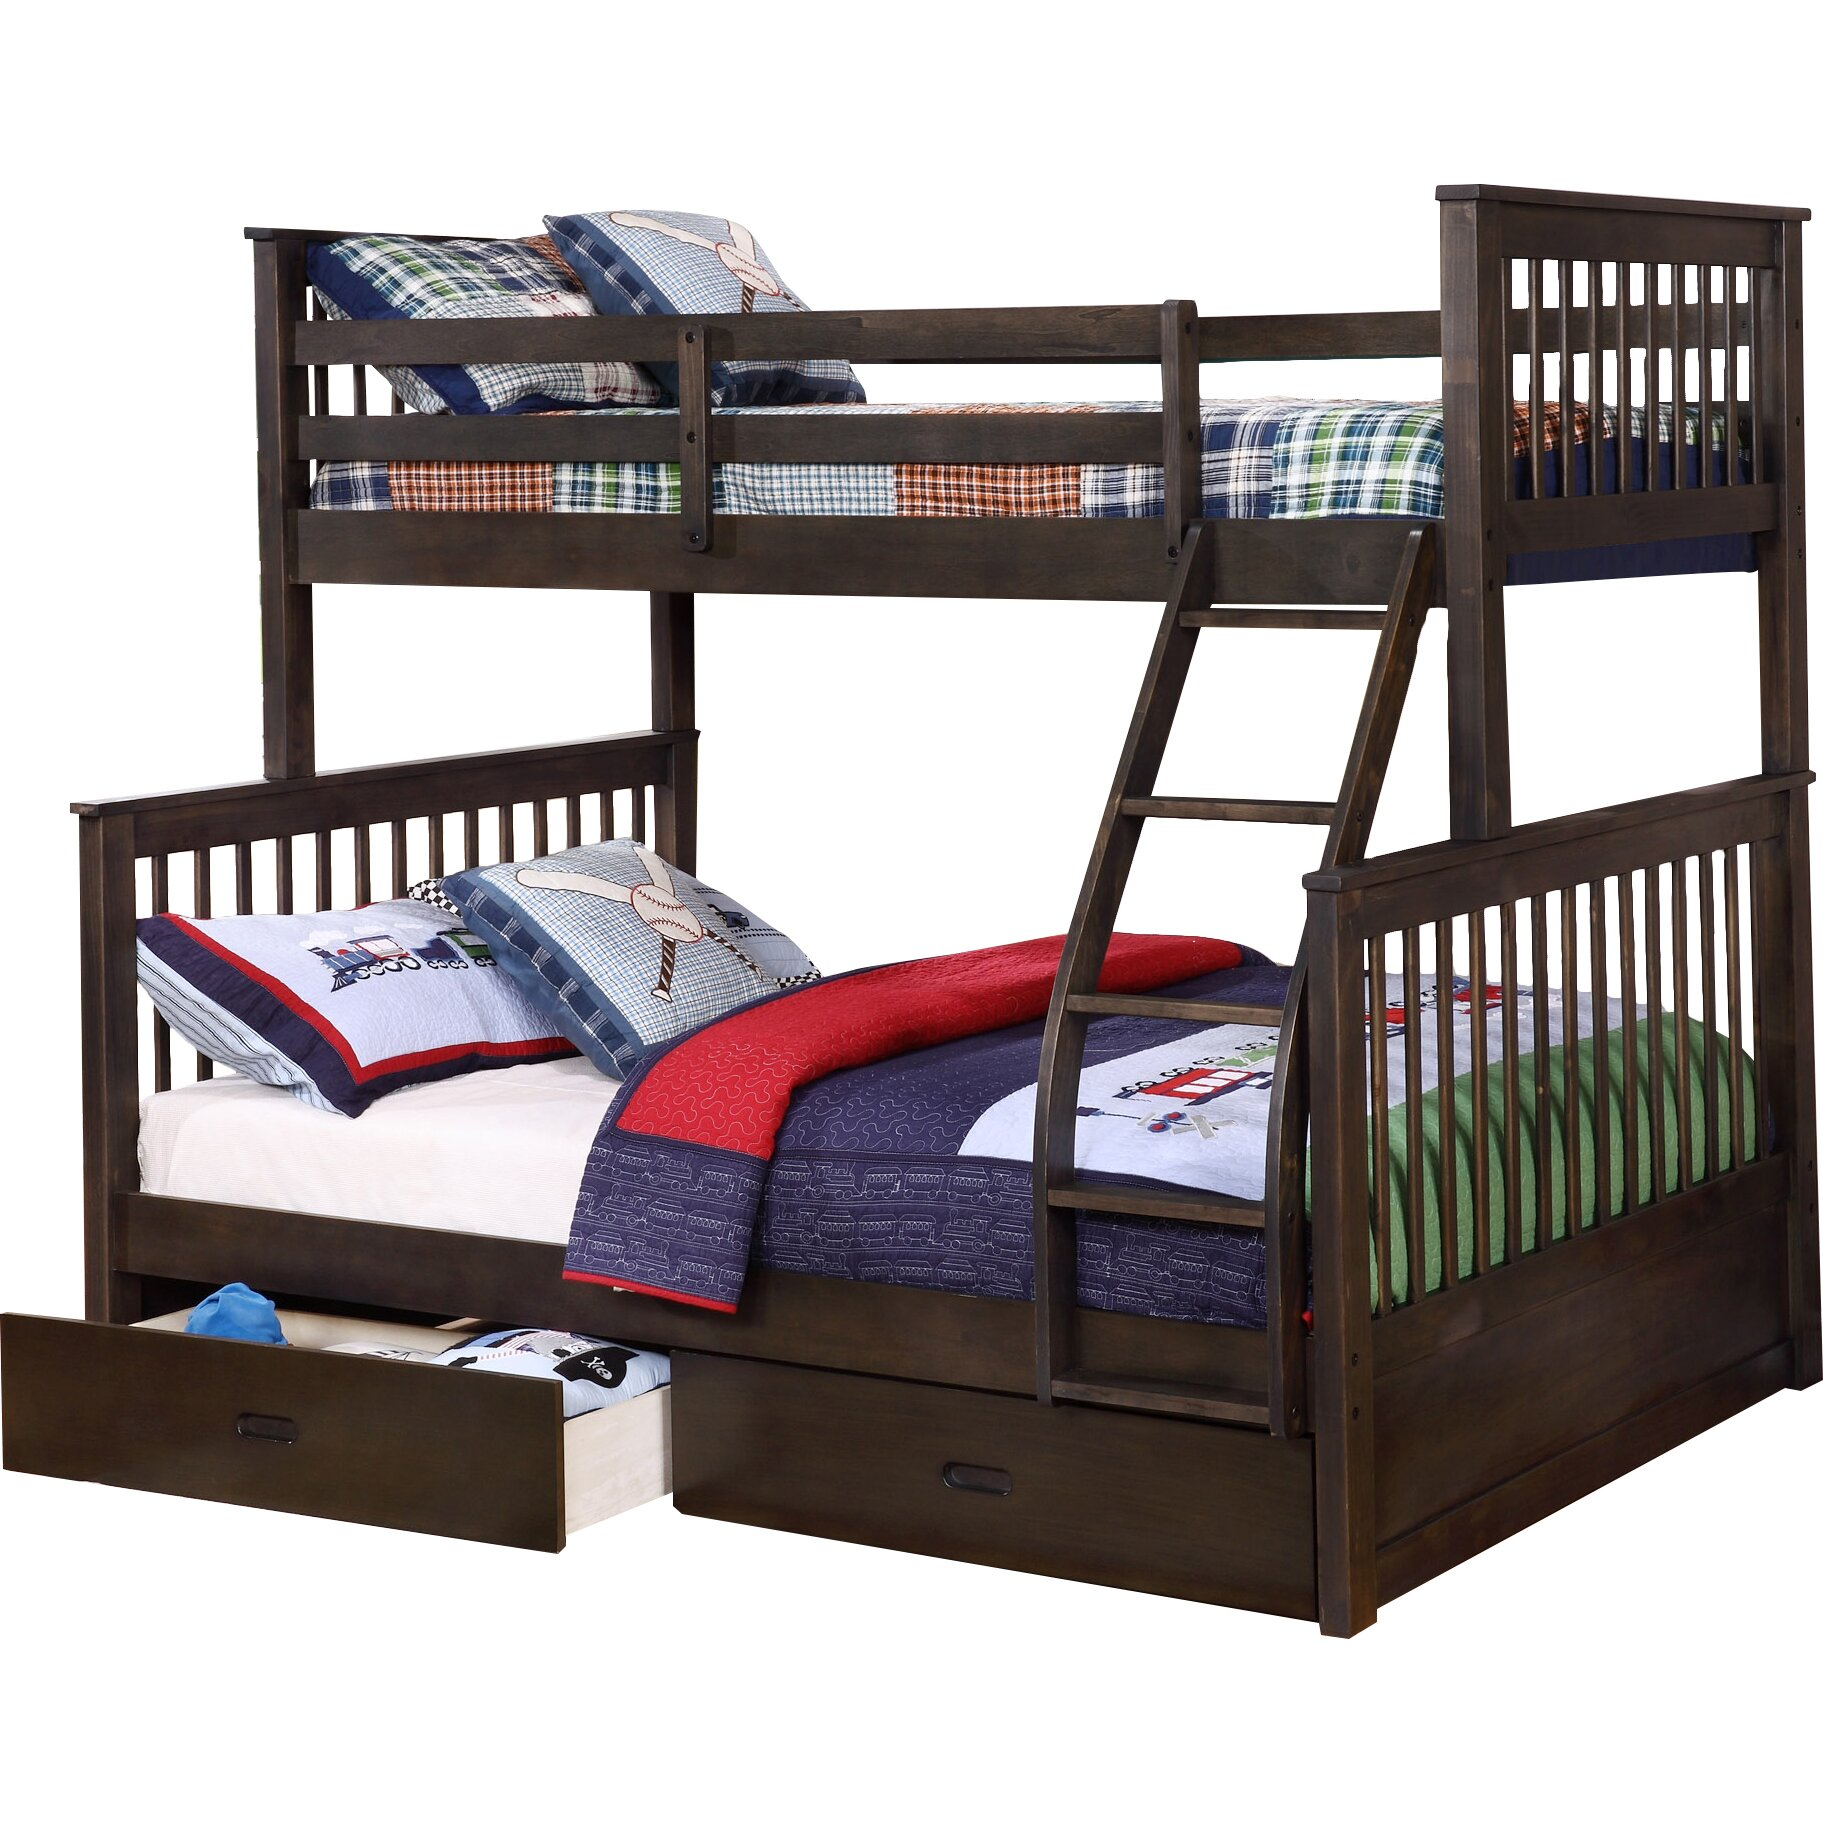 Wildon Home 174 Paloma Mission Twin Over Full Bunk Bed With